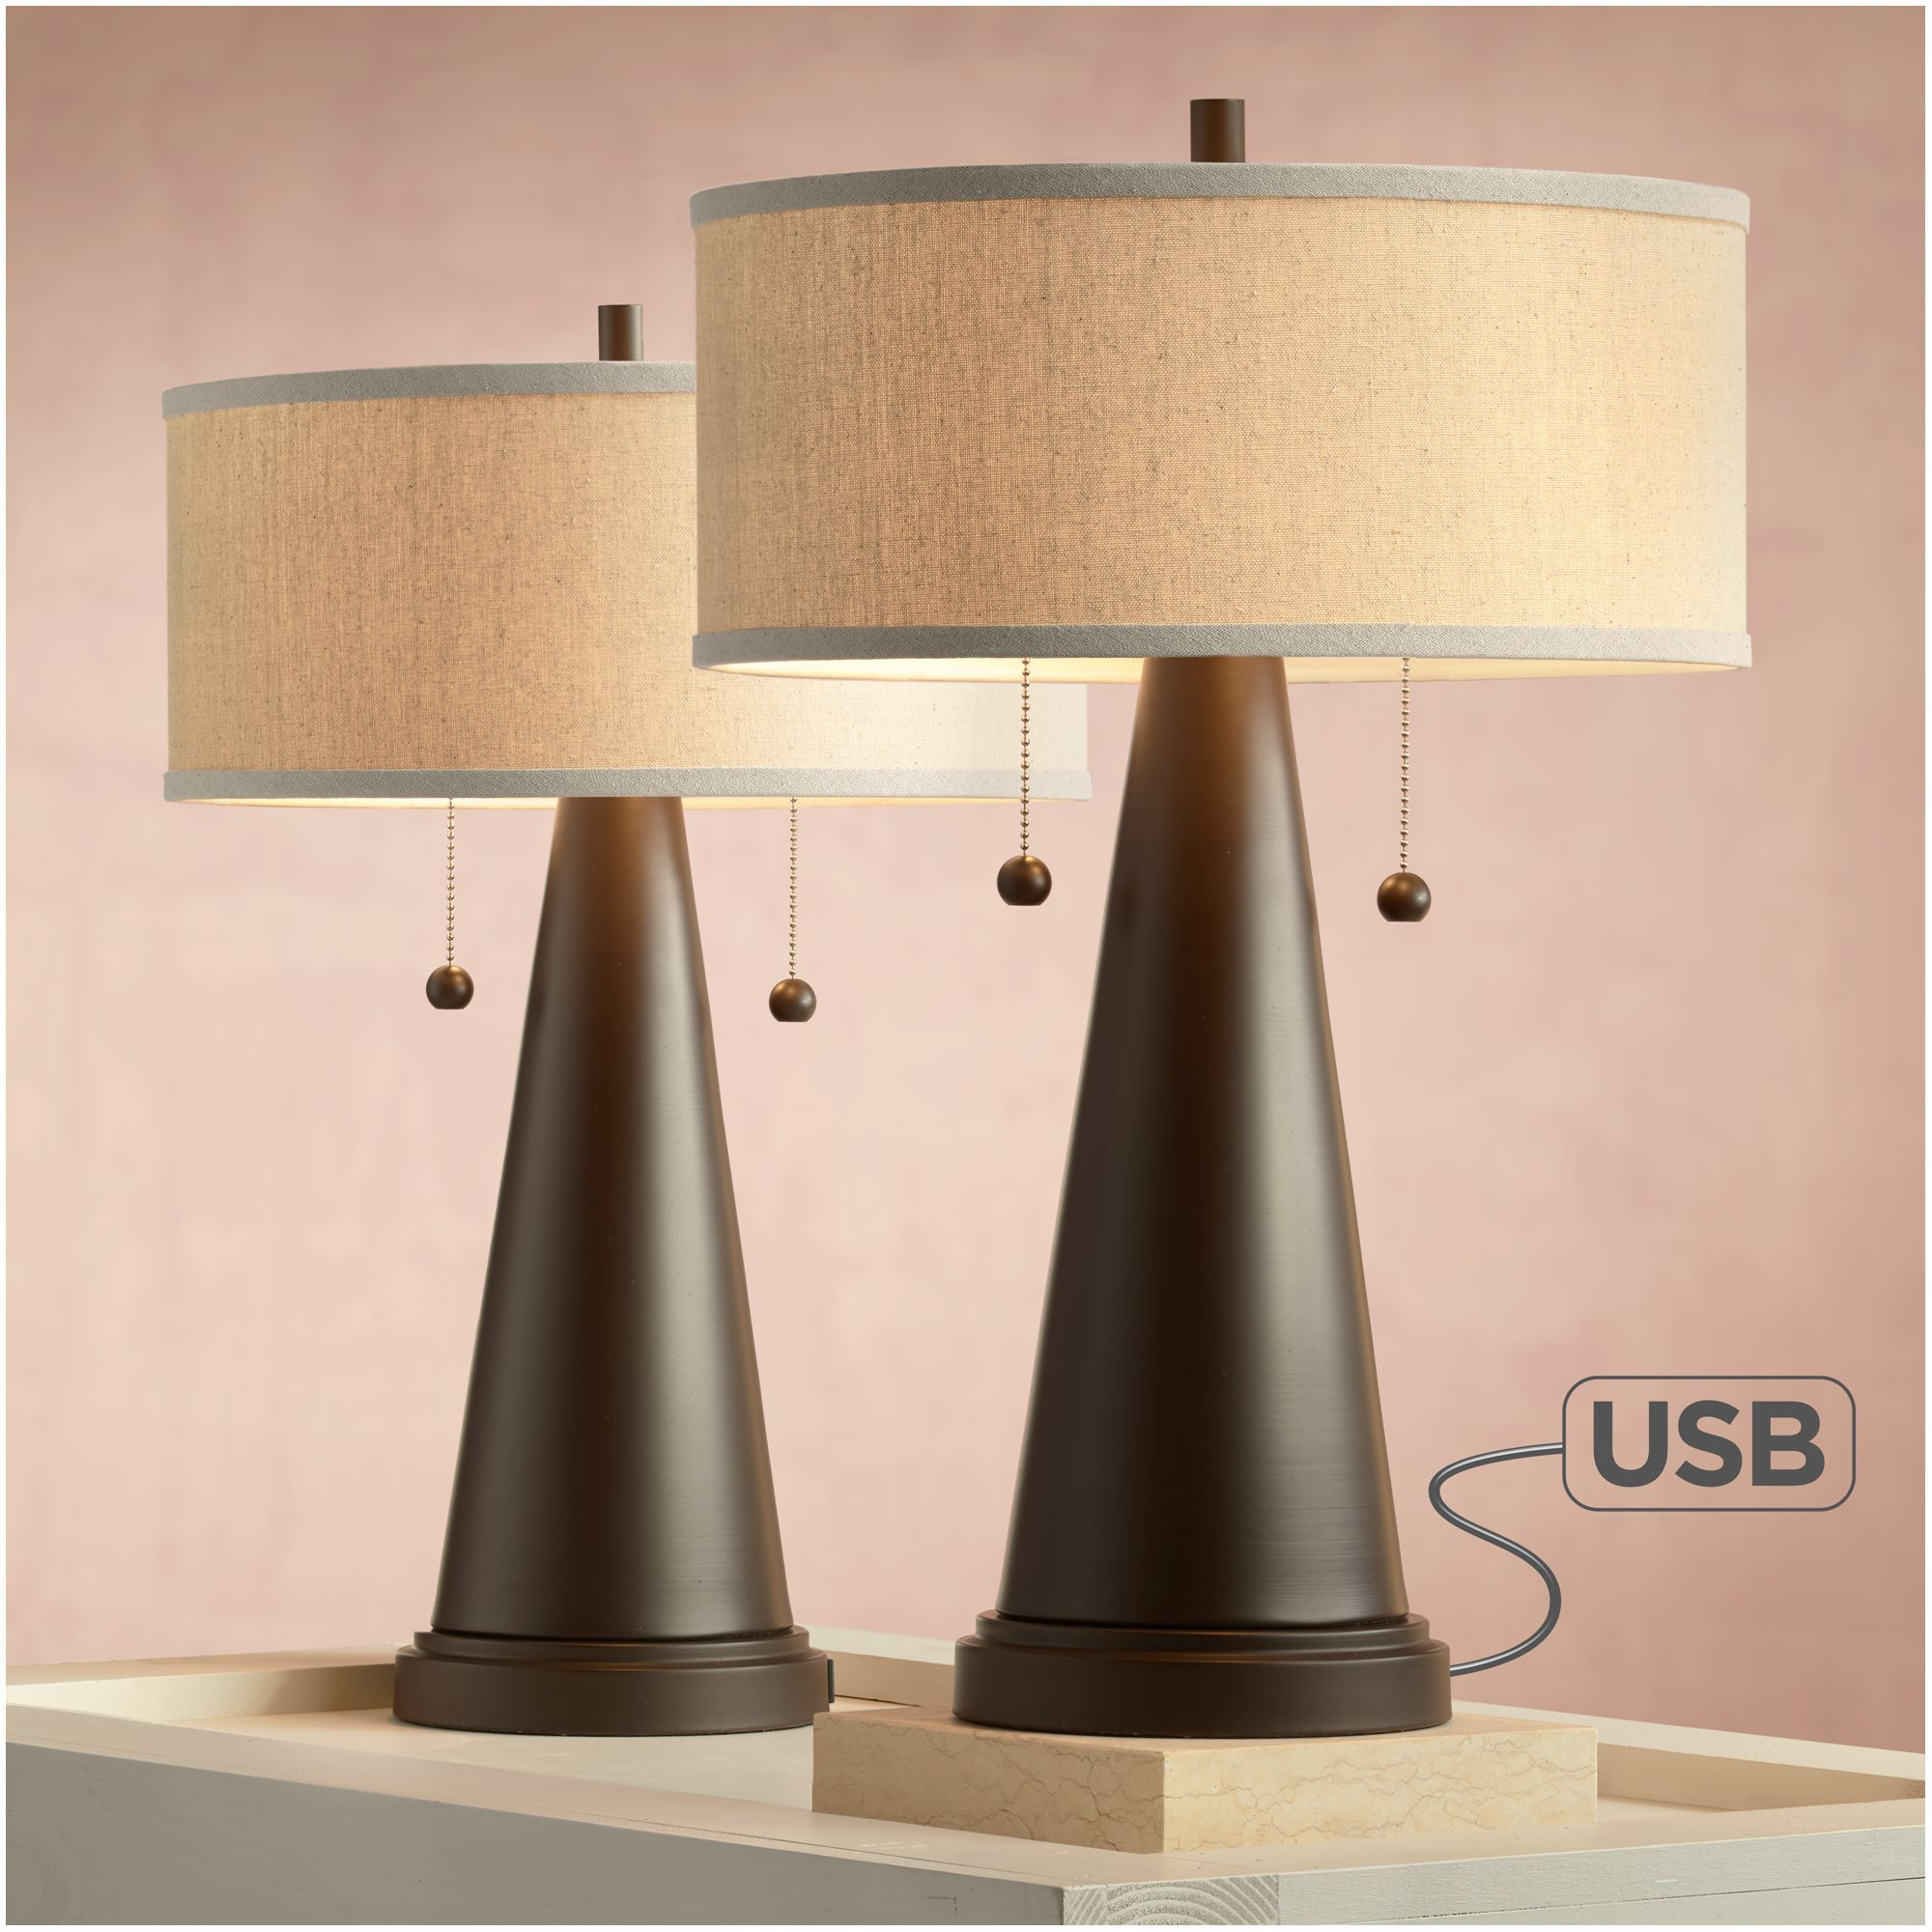 franklin iron works mid century modern accent table lamps set with usb port bronze metal natural linen drum shade for bedroom target makeup tablecloth round dining rustic gray